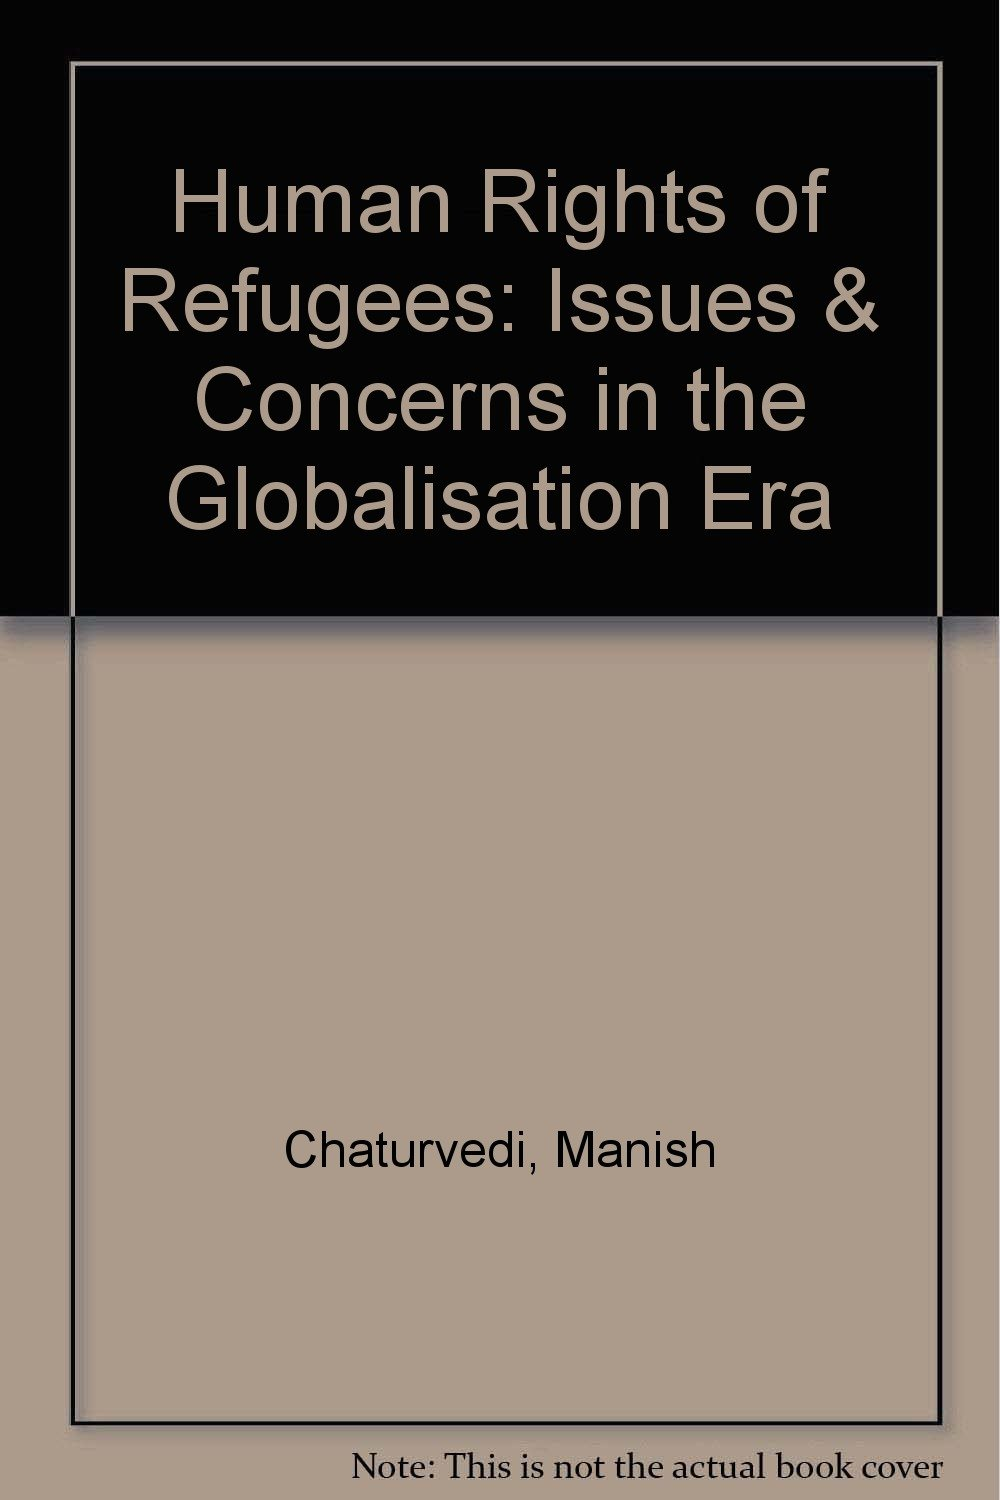 Download Human Rights of Refugees: Issues & Concerns in the Globalisation Era pdf